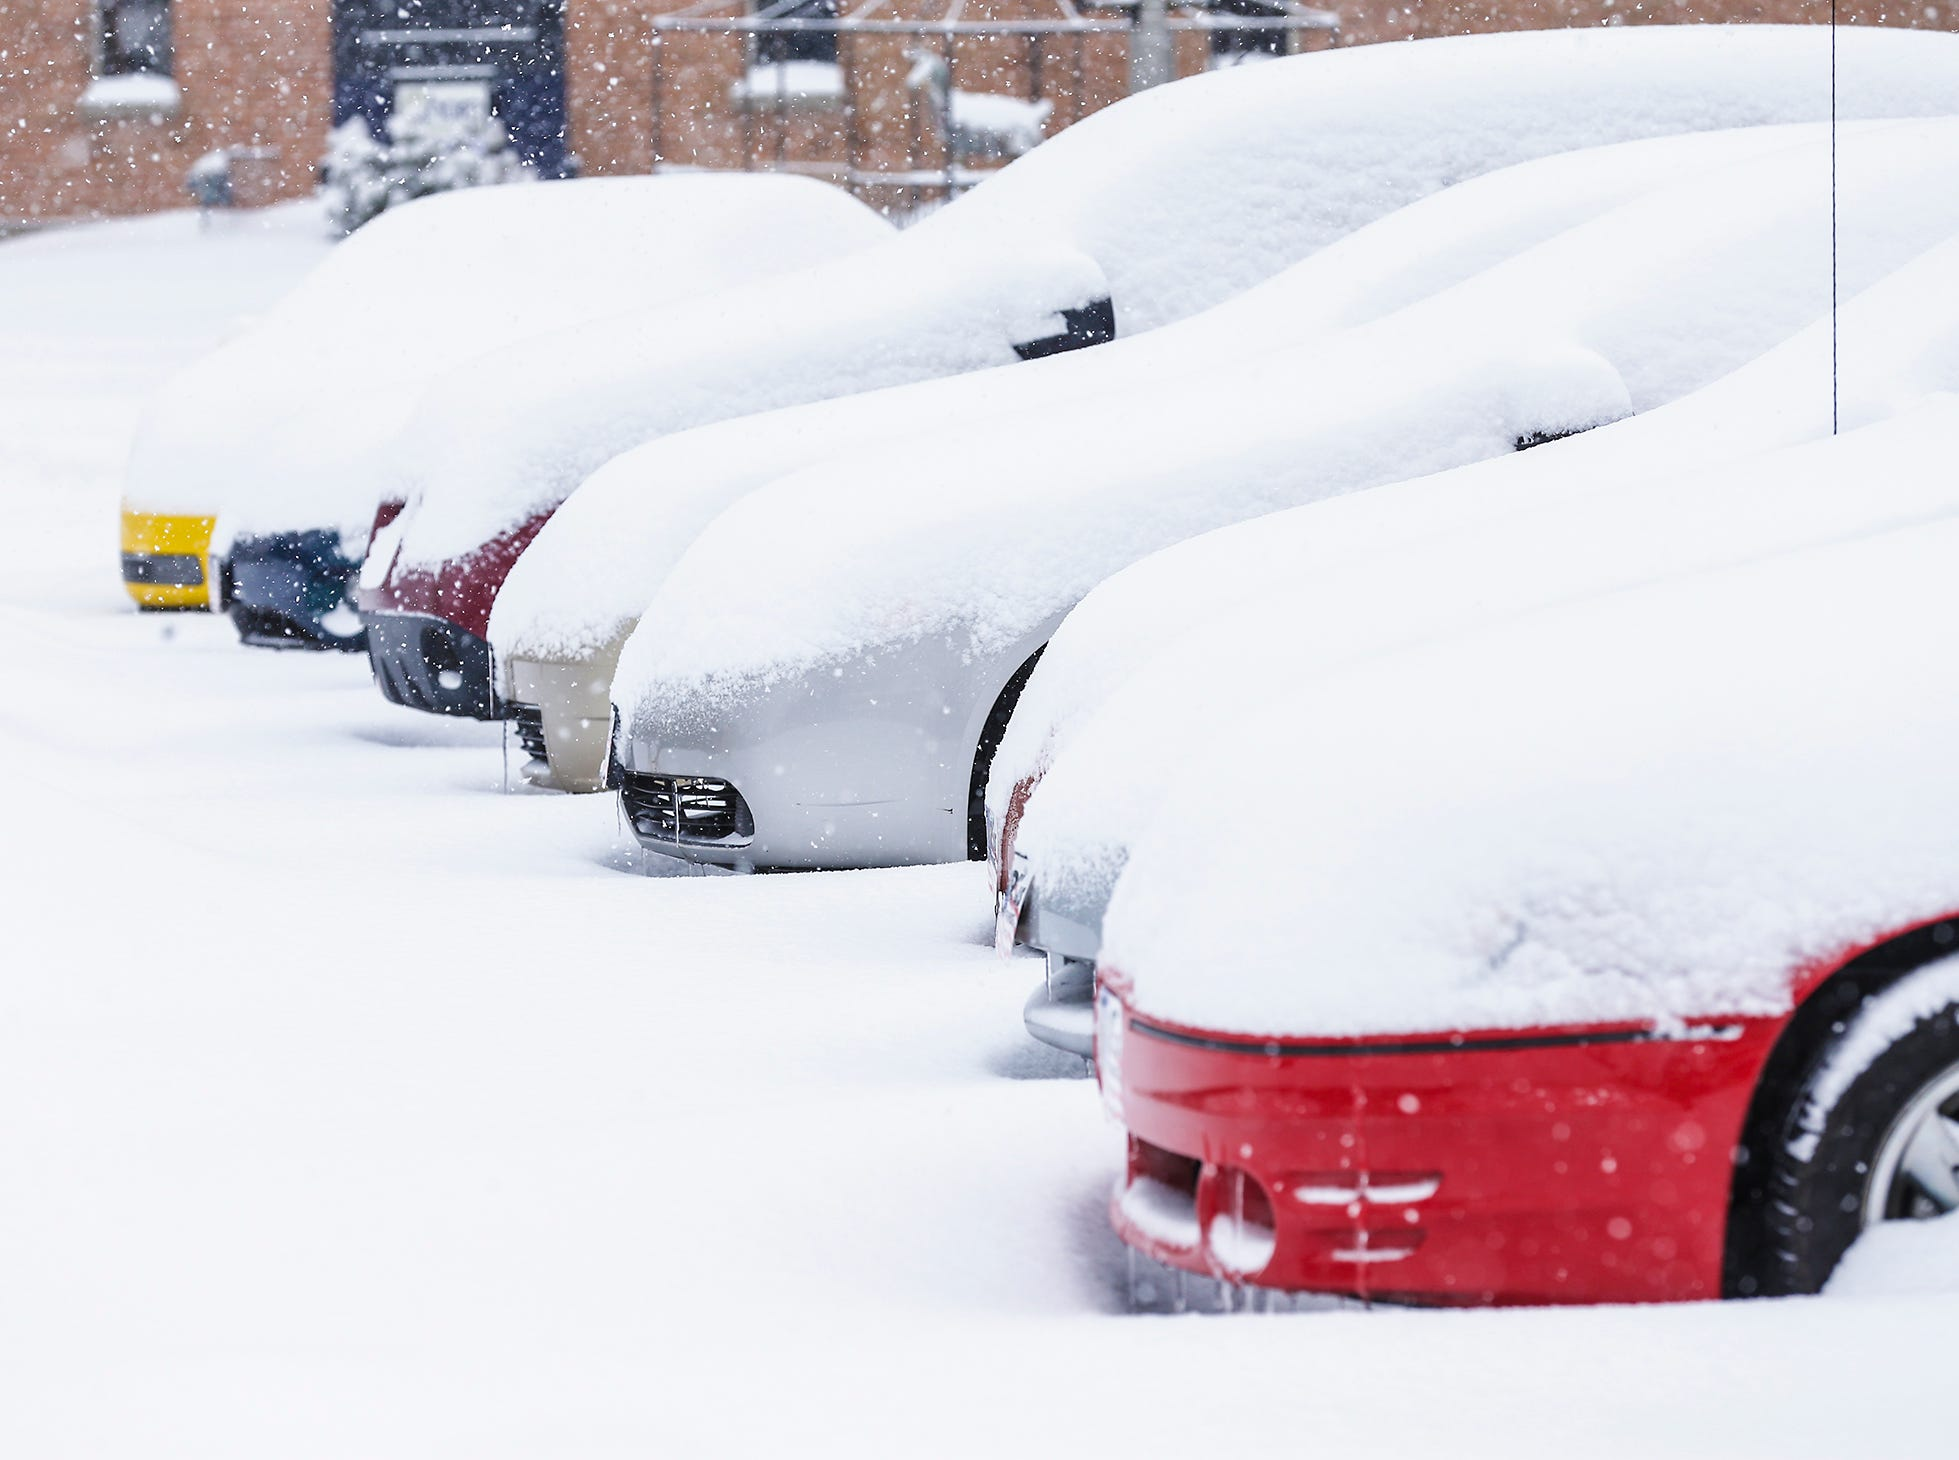 Cars for sale are covered in snow during a winter storm Tuesday, February 12, 2019 at the Cars R Us car lot on Military Road in Fond du Lac, Wis. A winter storm warning was issued for the area.